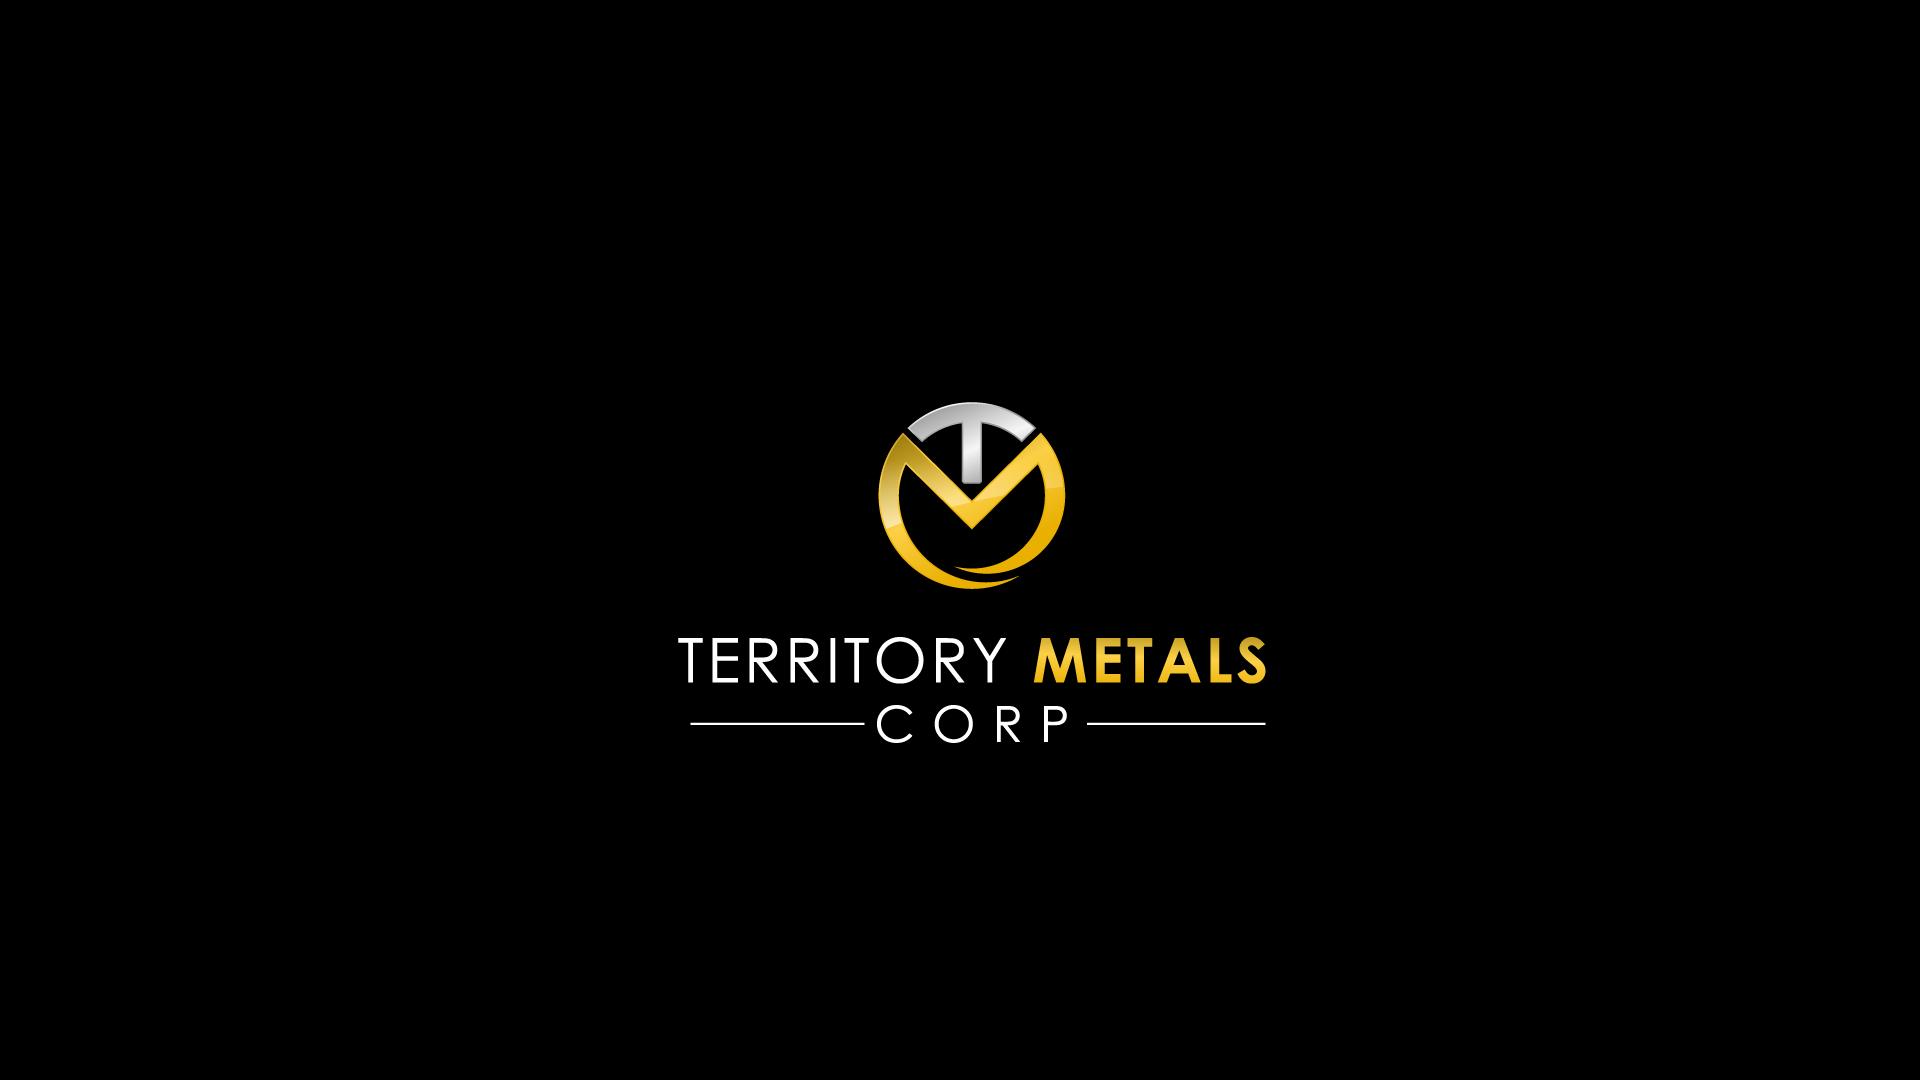 Logo Design by MD SHOHIDUL ISLAM - Entry No. 65 in the Logo Design Contest Unique Logo Design Wanted for Territory Metals Corp..